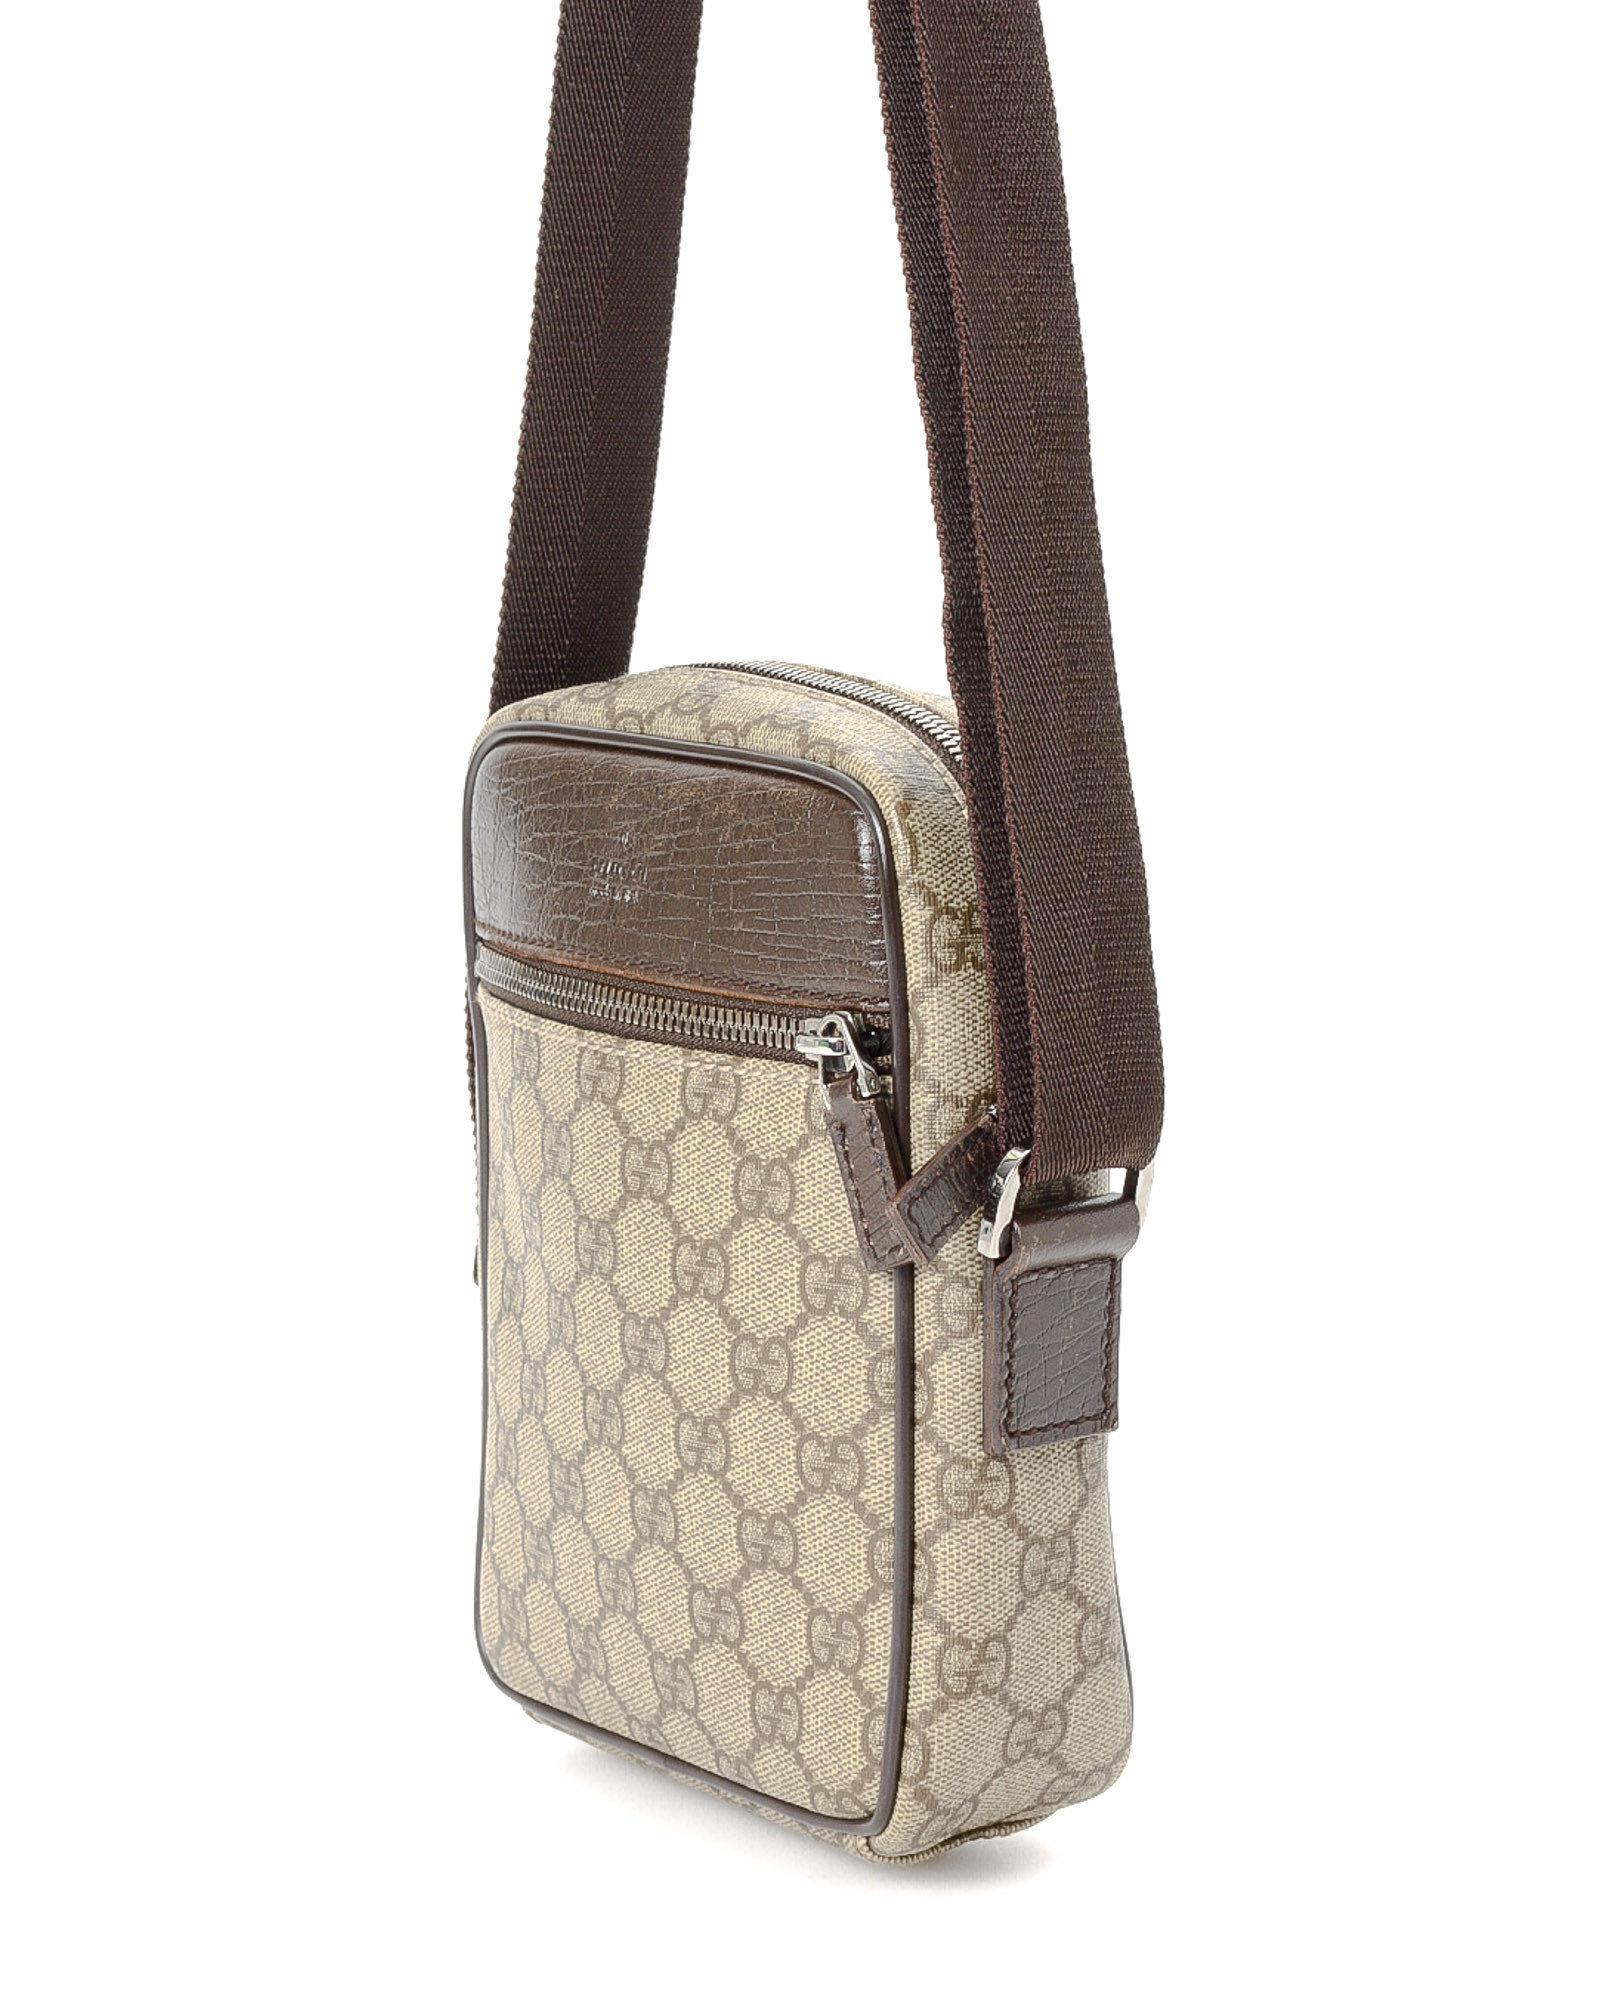 37f3d4efae6e8 Lyst - Gucci Gg Supreme Crossbody - Vintage in Natural